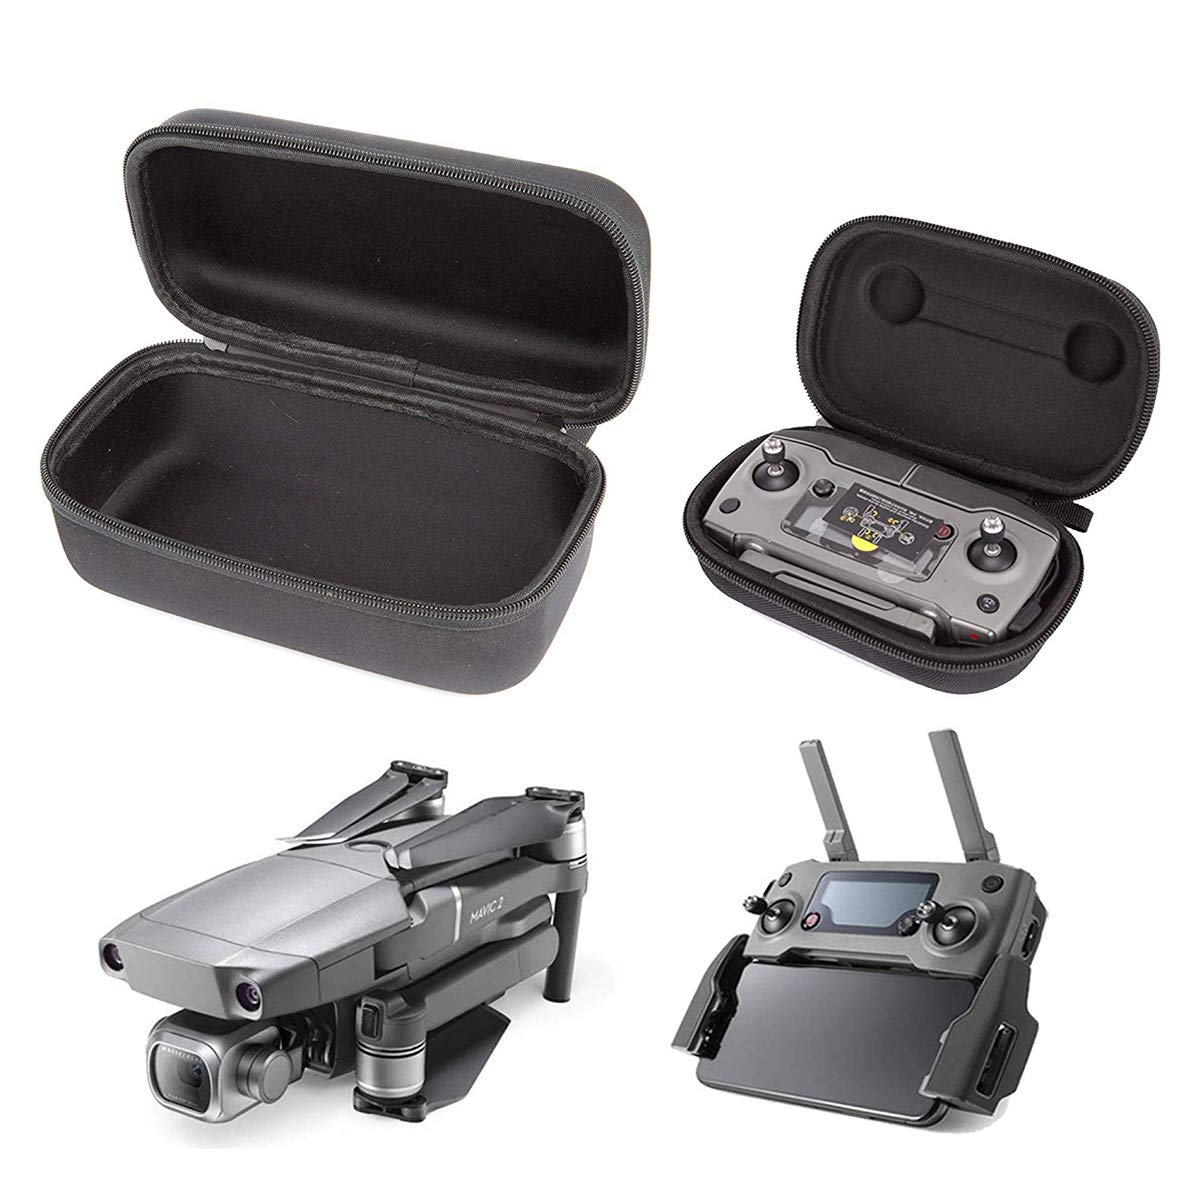 Carrying Case for DJI Mavic 2 Pro Zoom Foldable Drone Body and Remote Controller Transmitter Bag Accessory